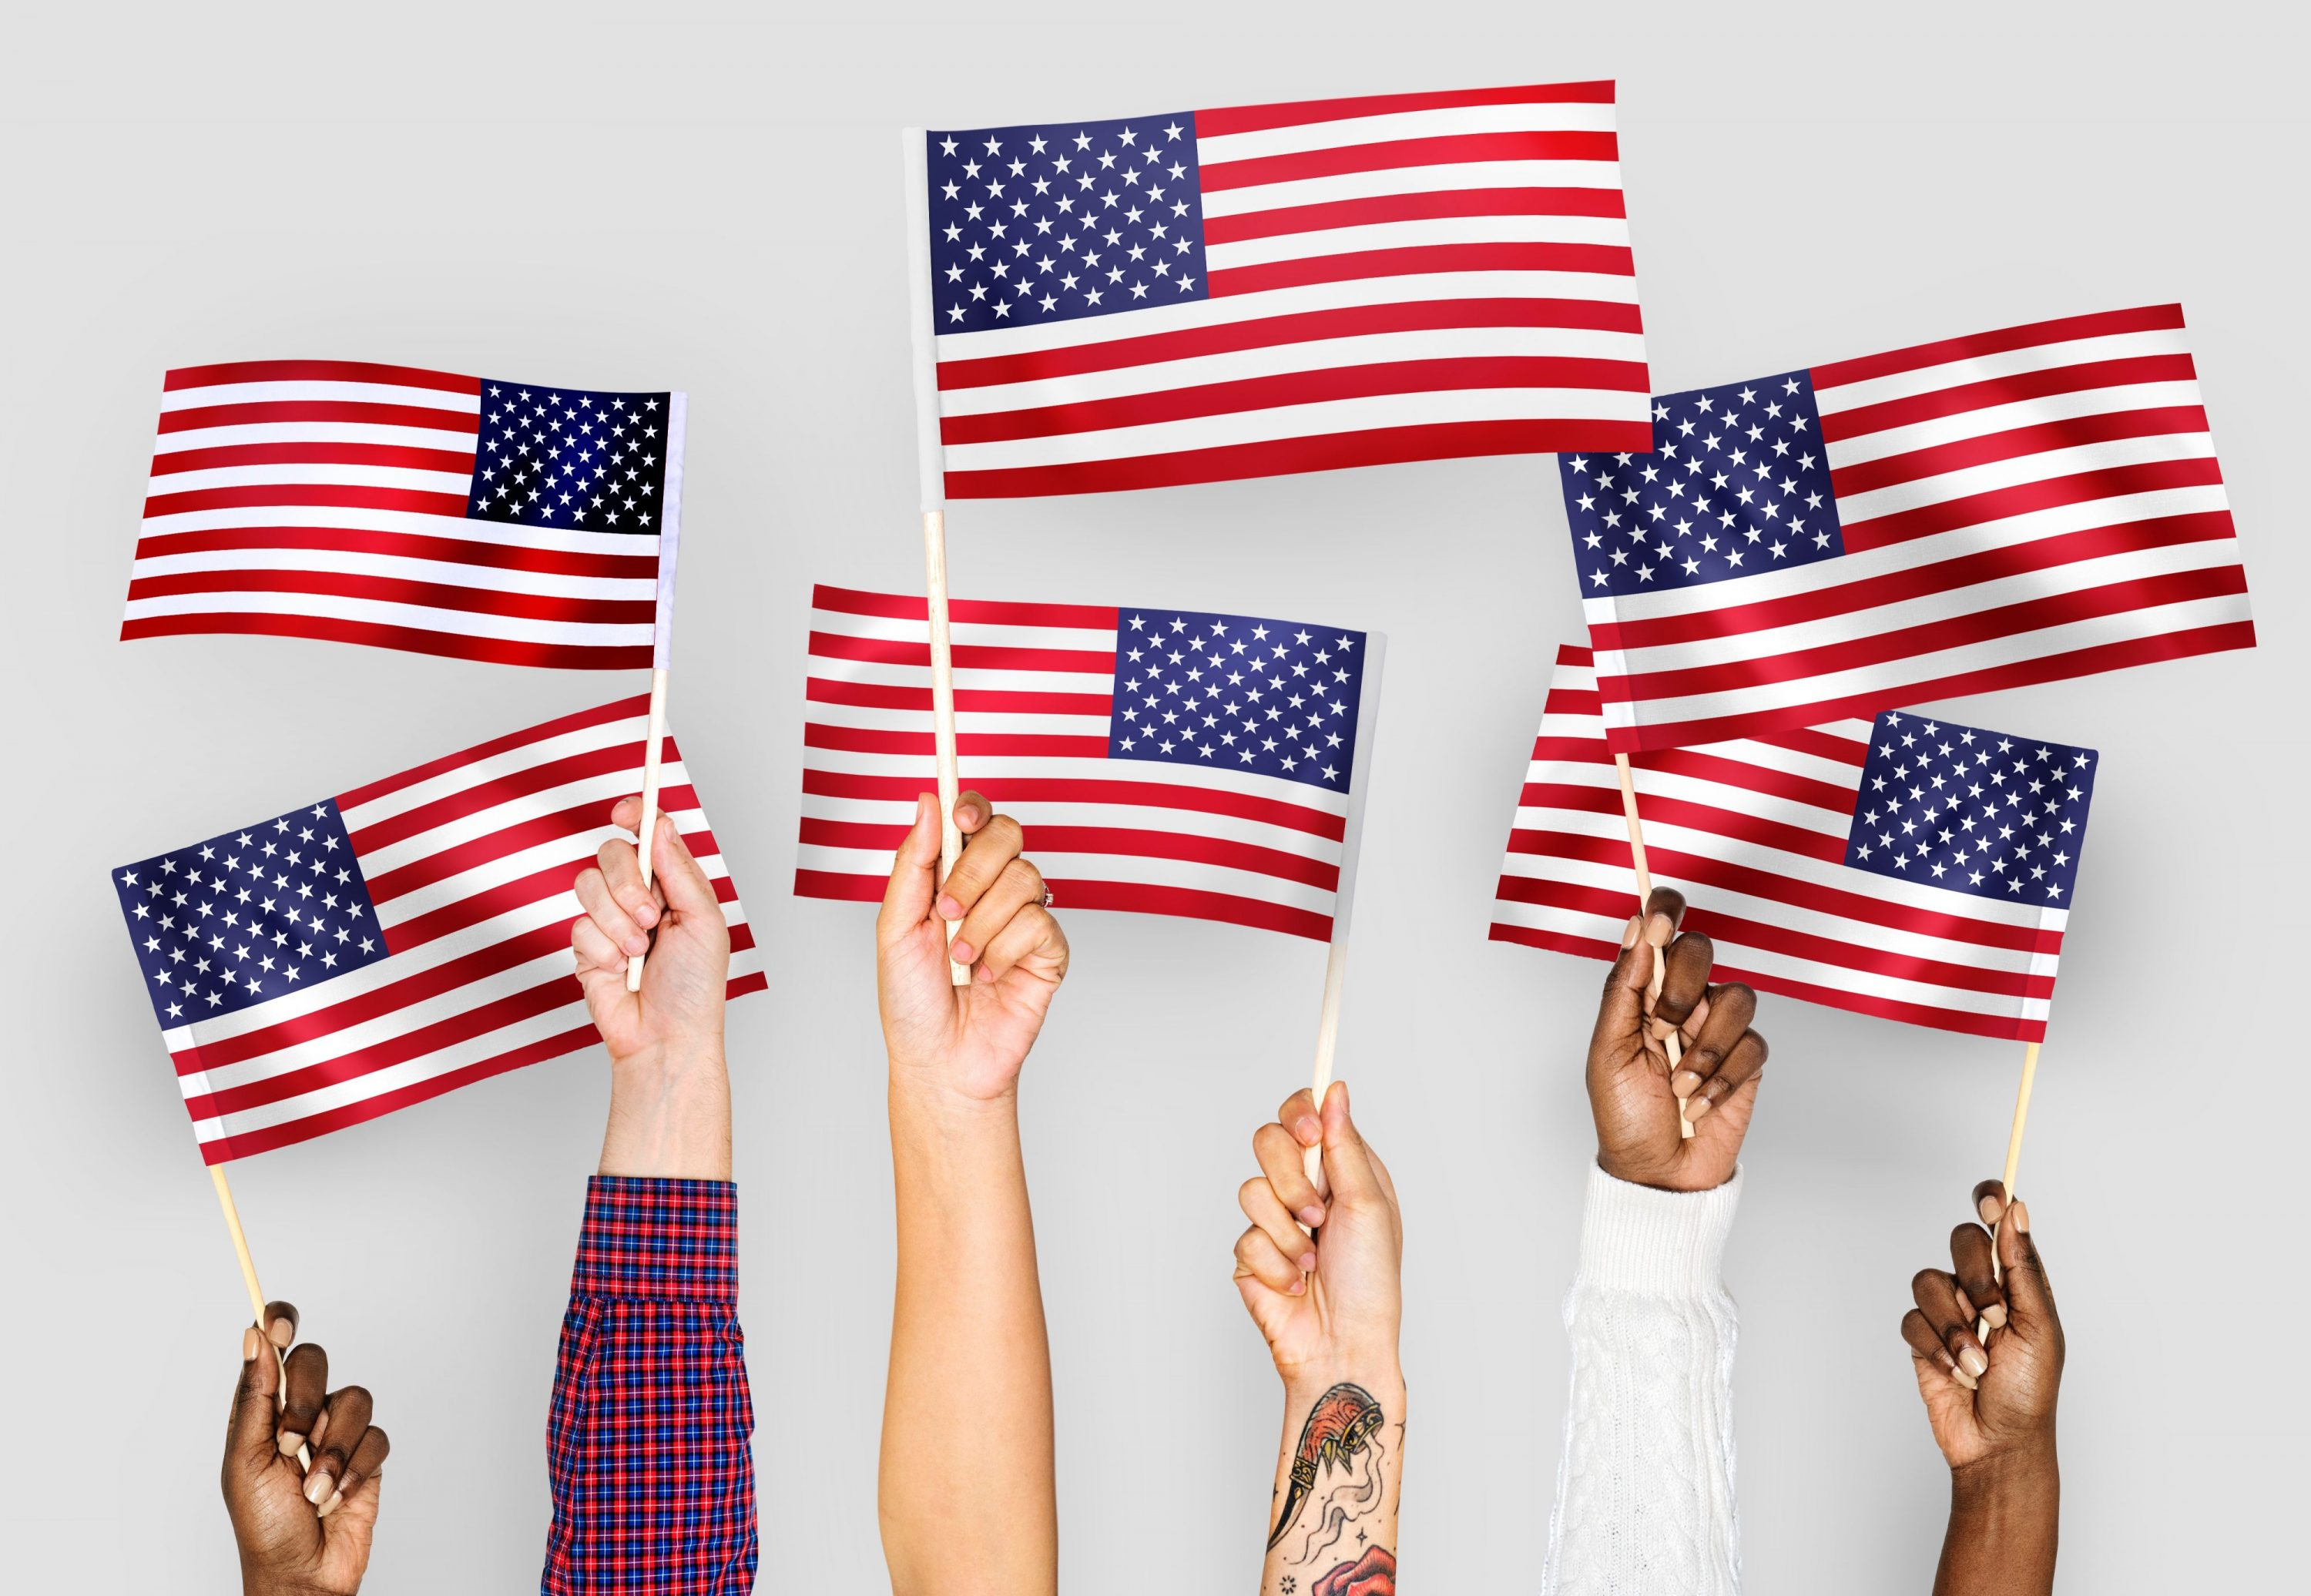 Team of people waving flags of USA